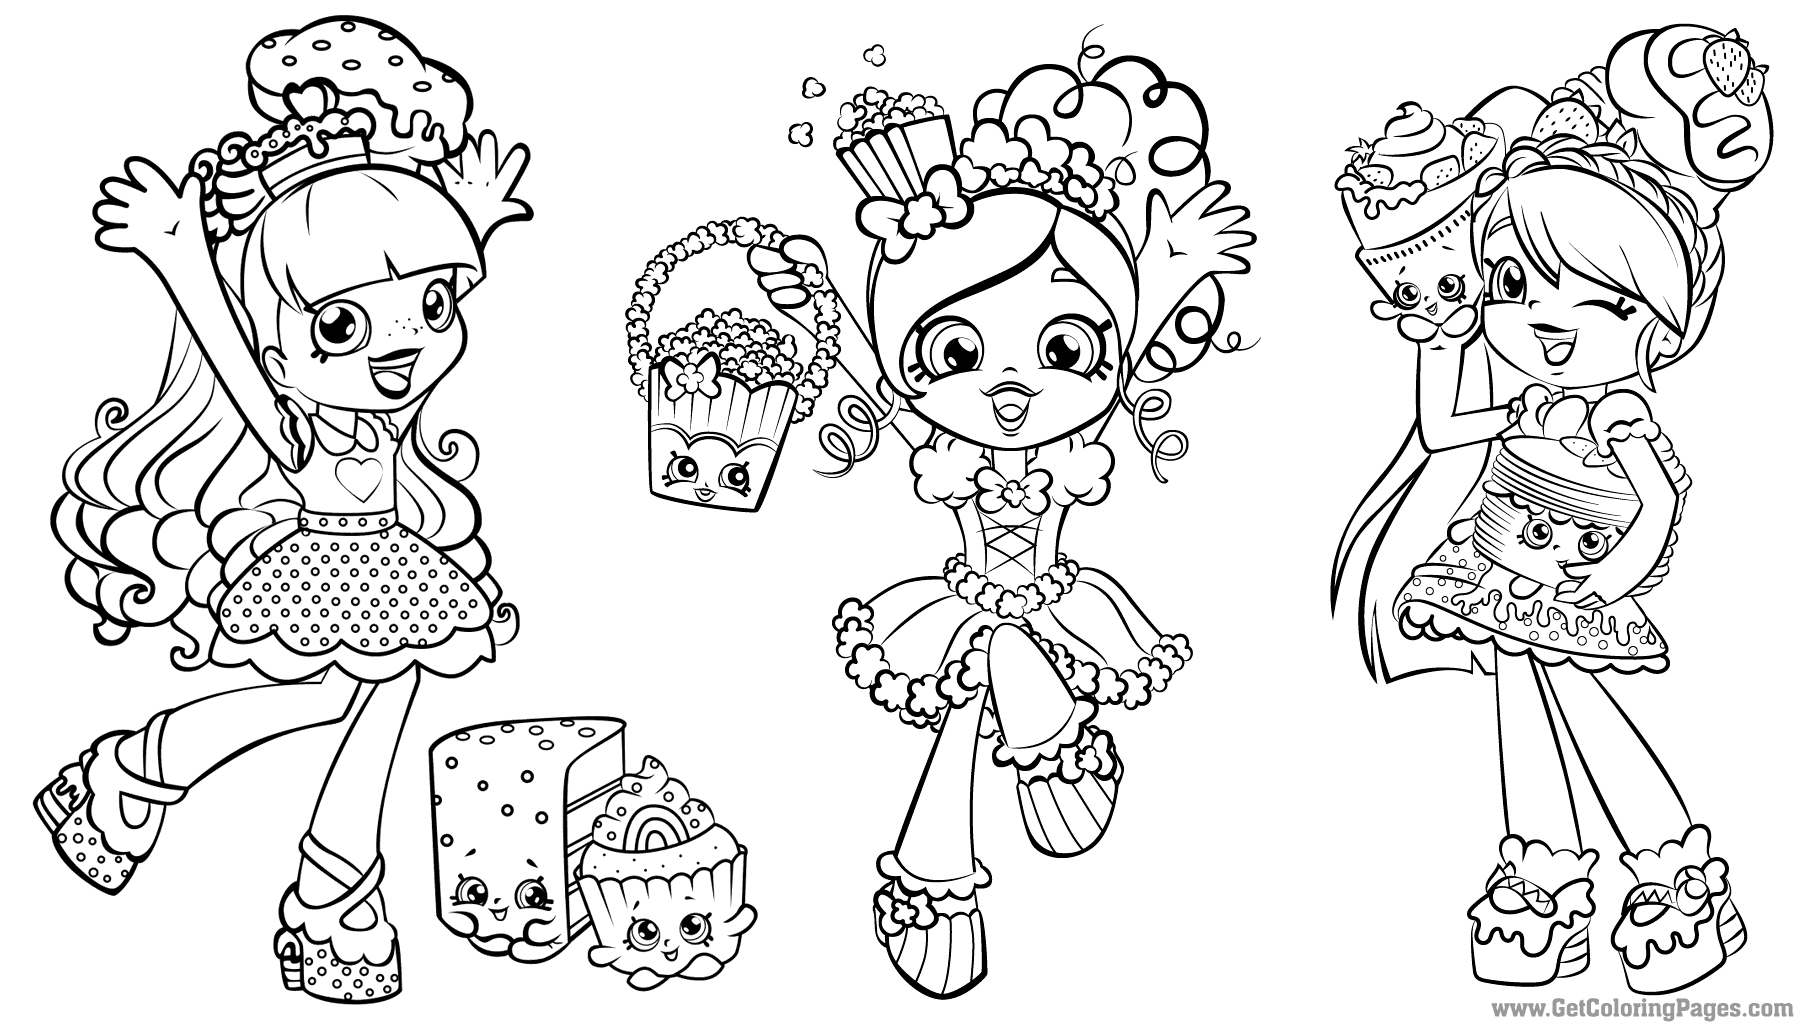 Shoppies Coloring Pages - Shopkins Coloring Pages Getcoloringpages